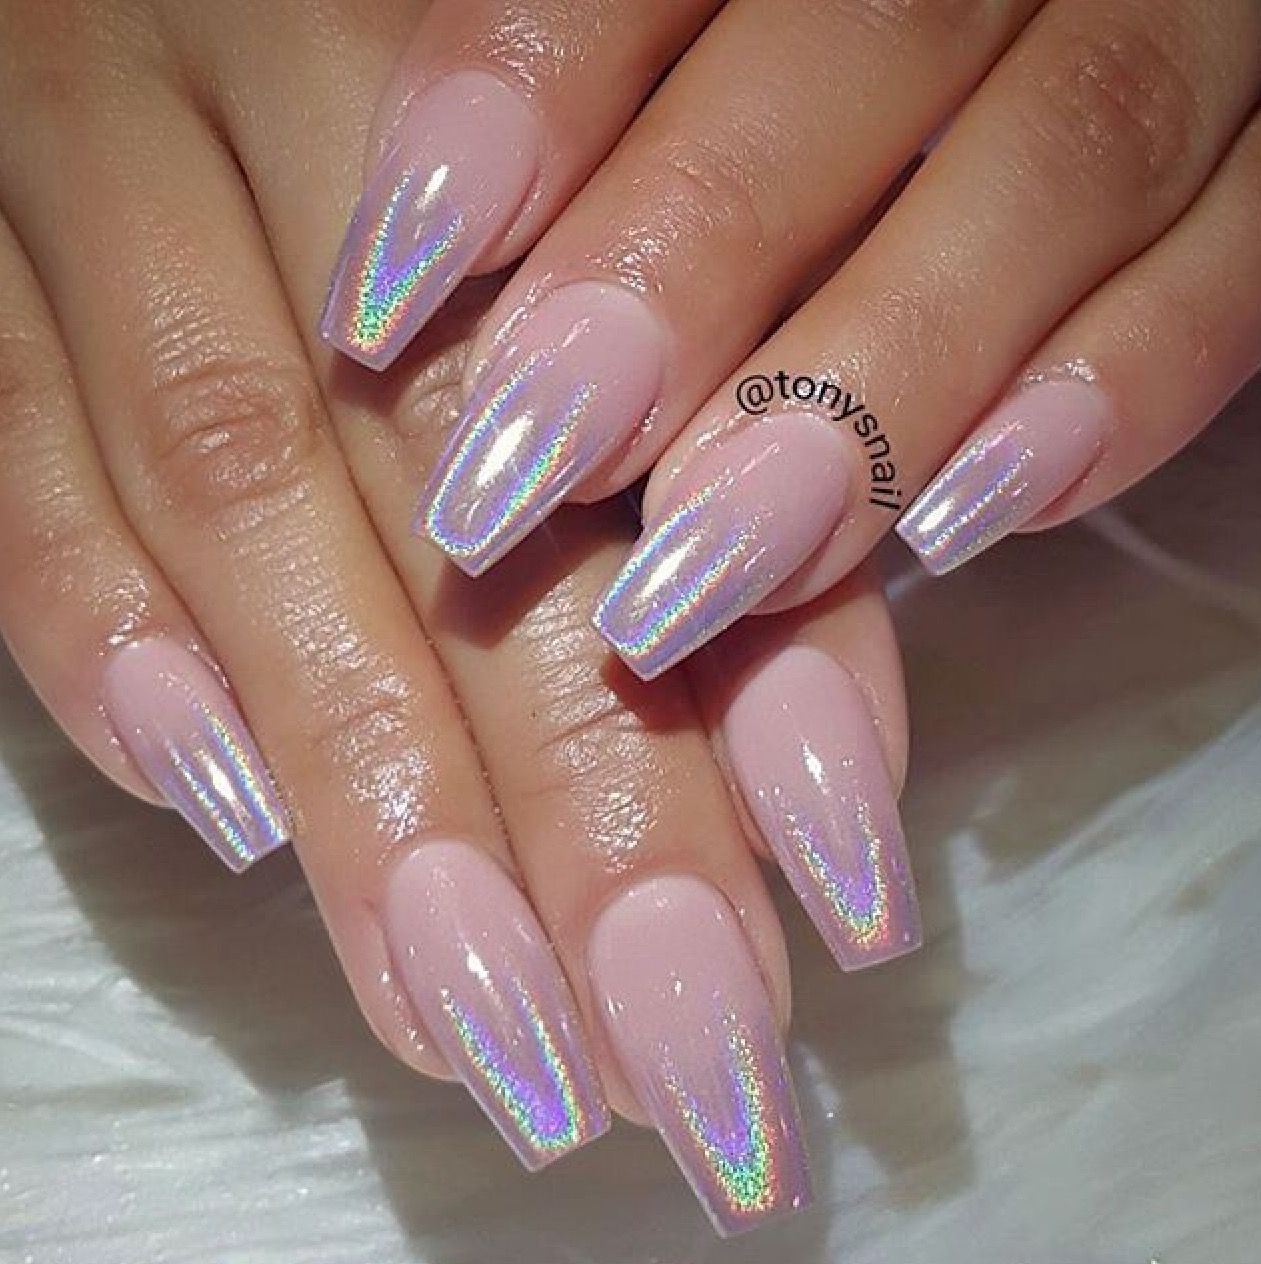 nails 10. holographic chrome